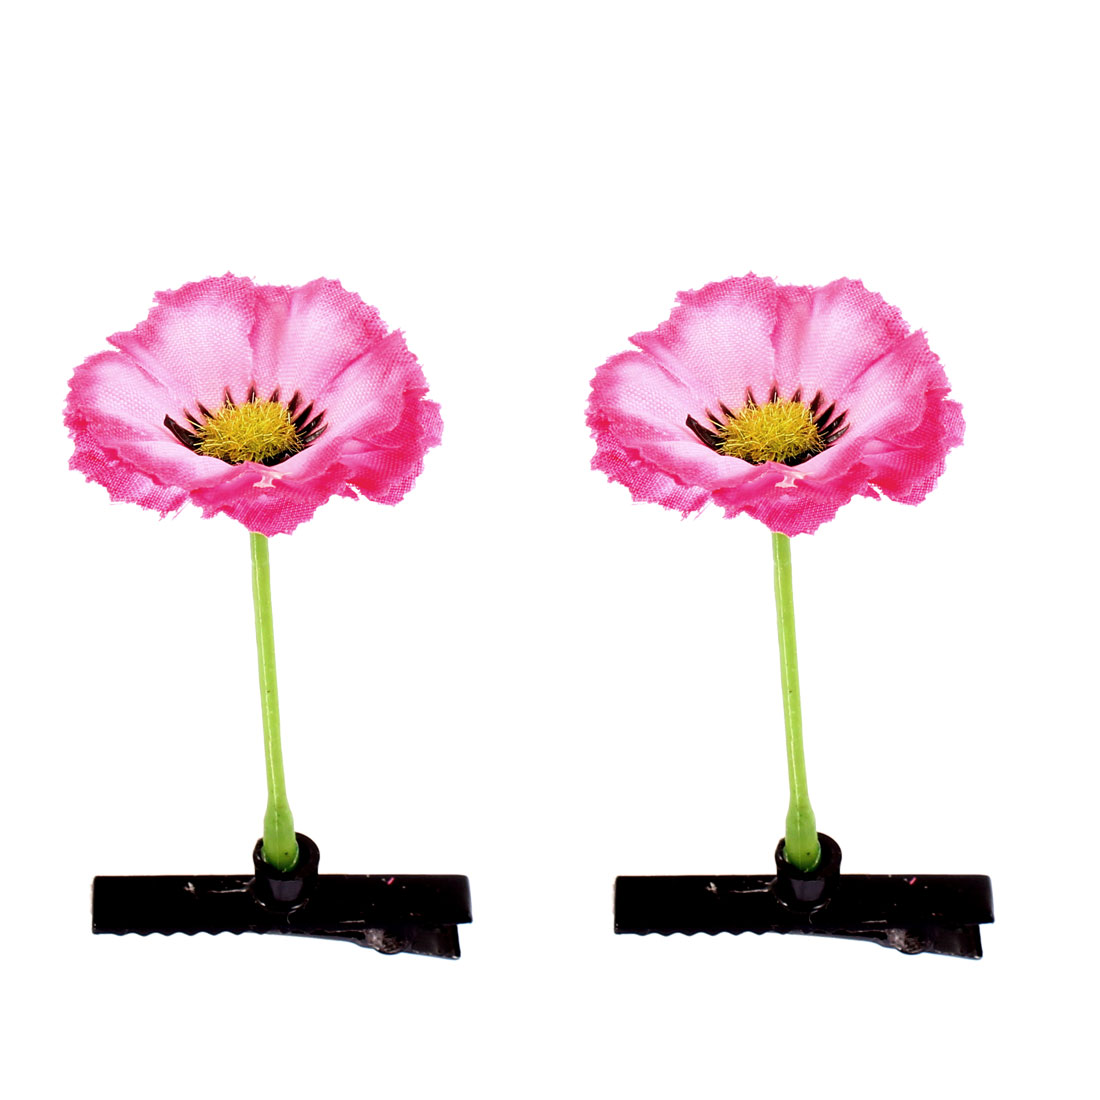 Women Artificial Flower Floral Antenna Hairpin Hollyhock Hair Clips Pink 2 Pcs